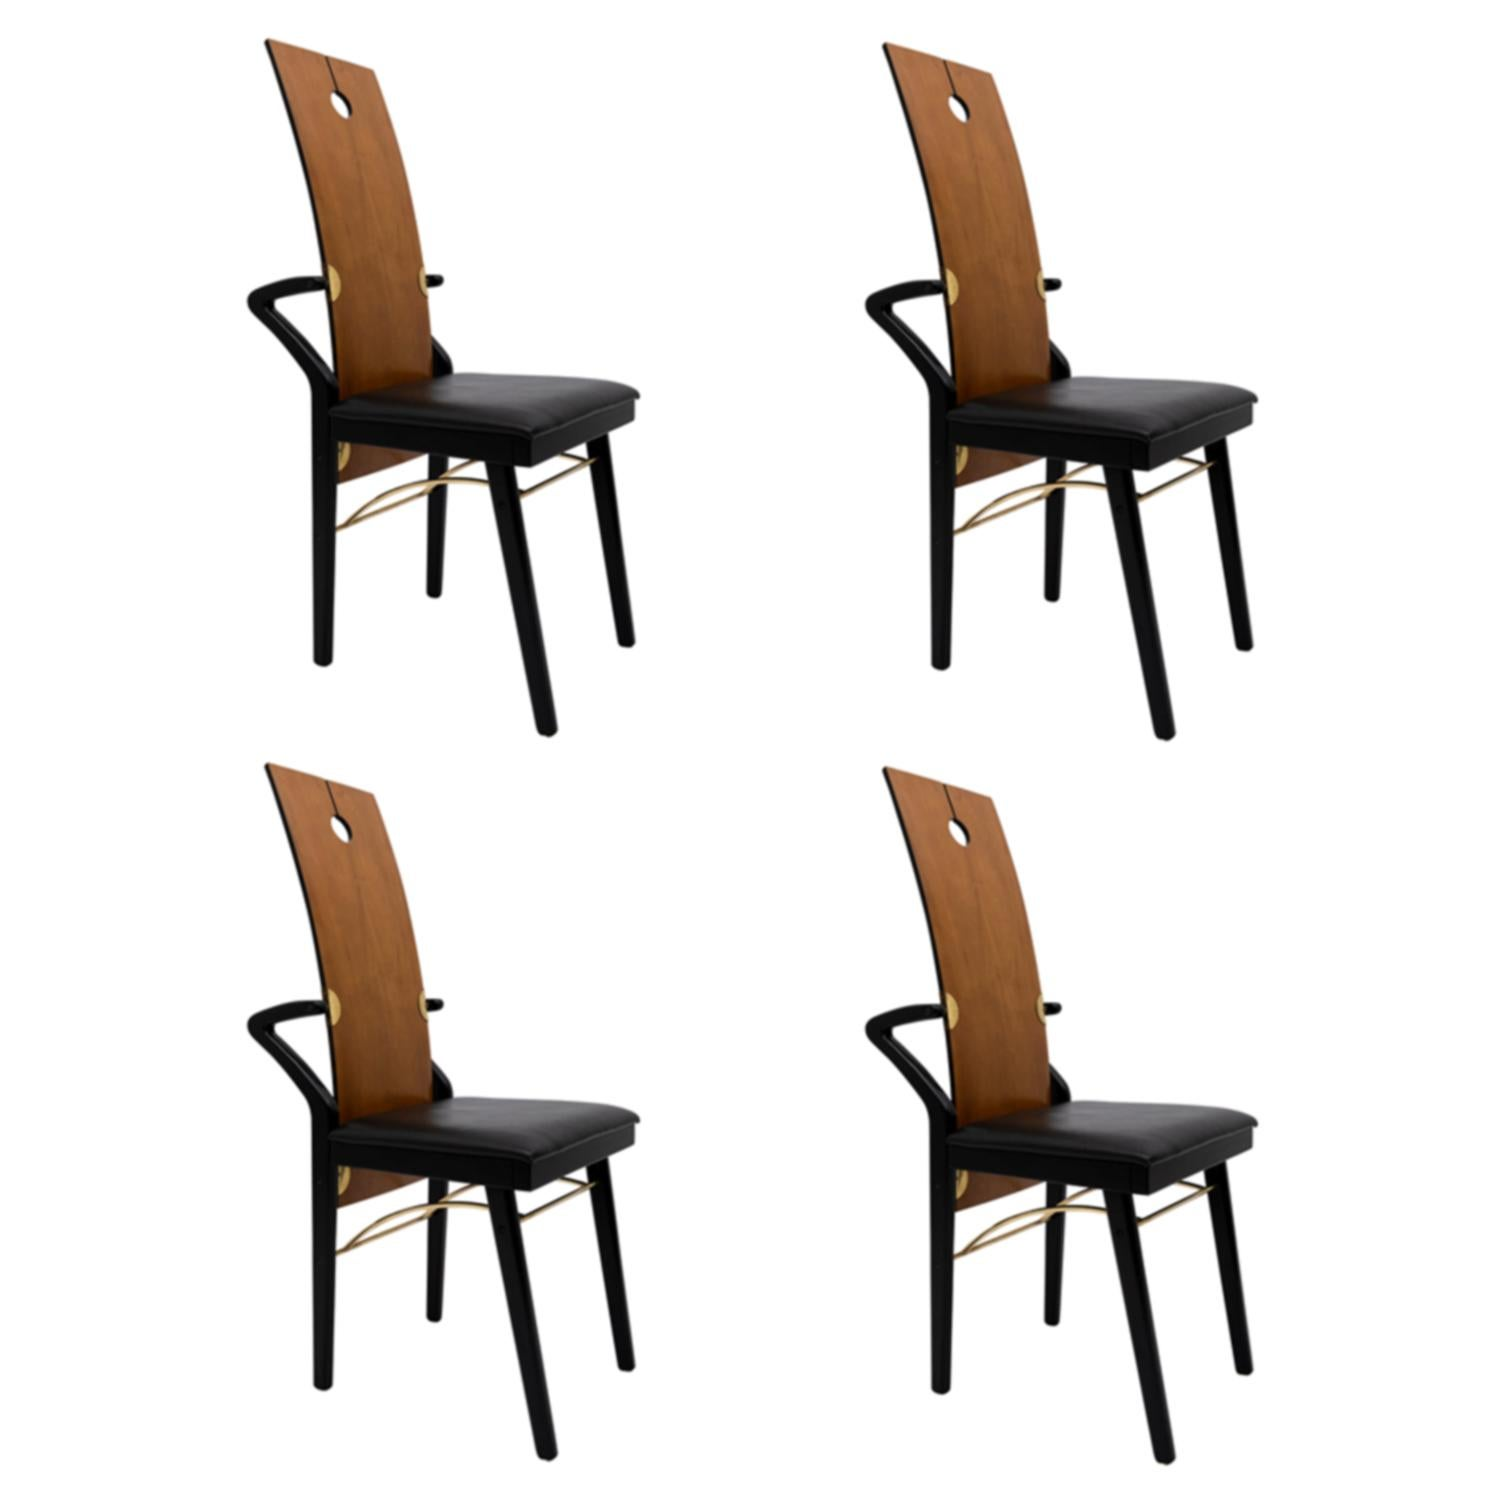 Four Post-Modern Italian Dining Chairs by Pierre Cardin, 1980s